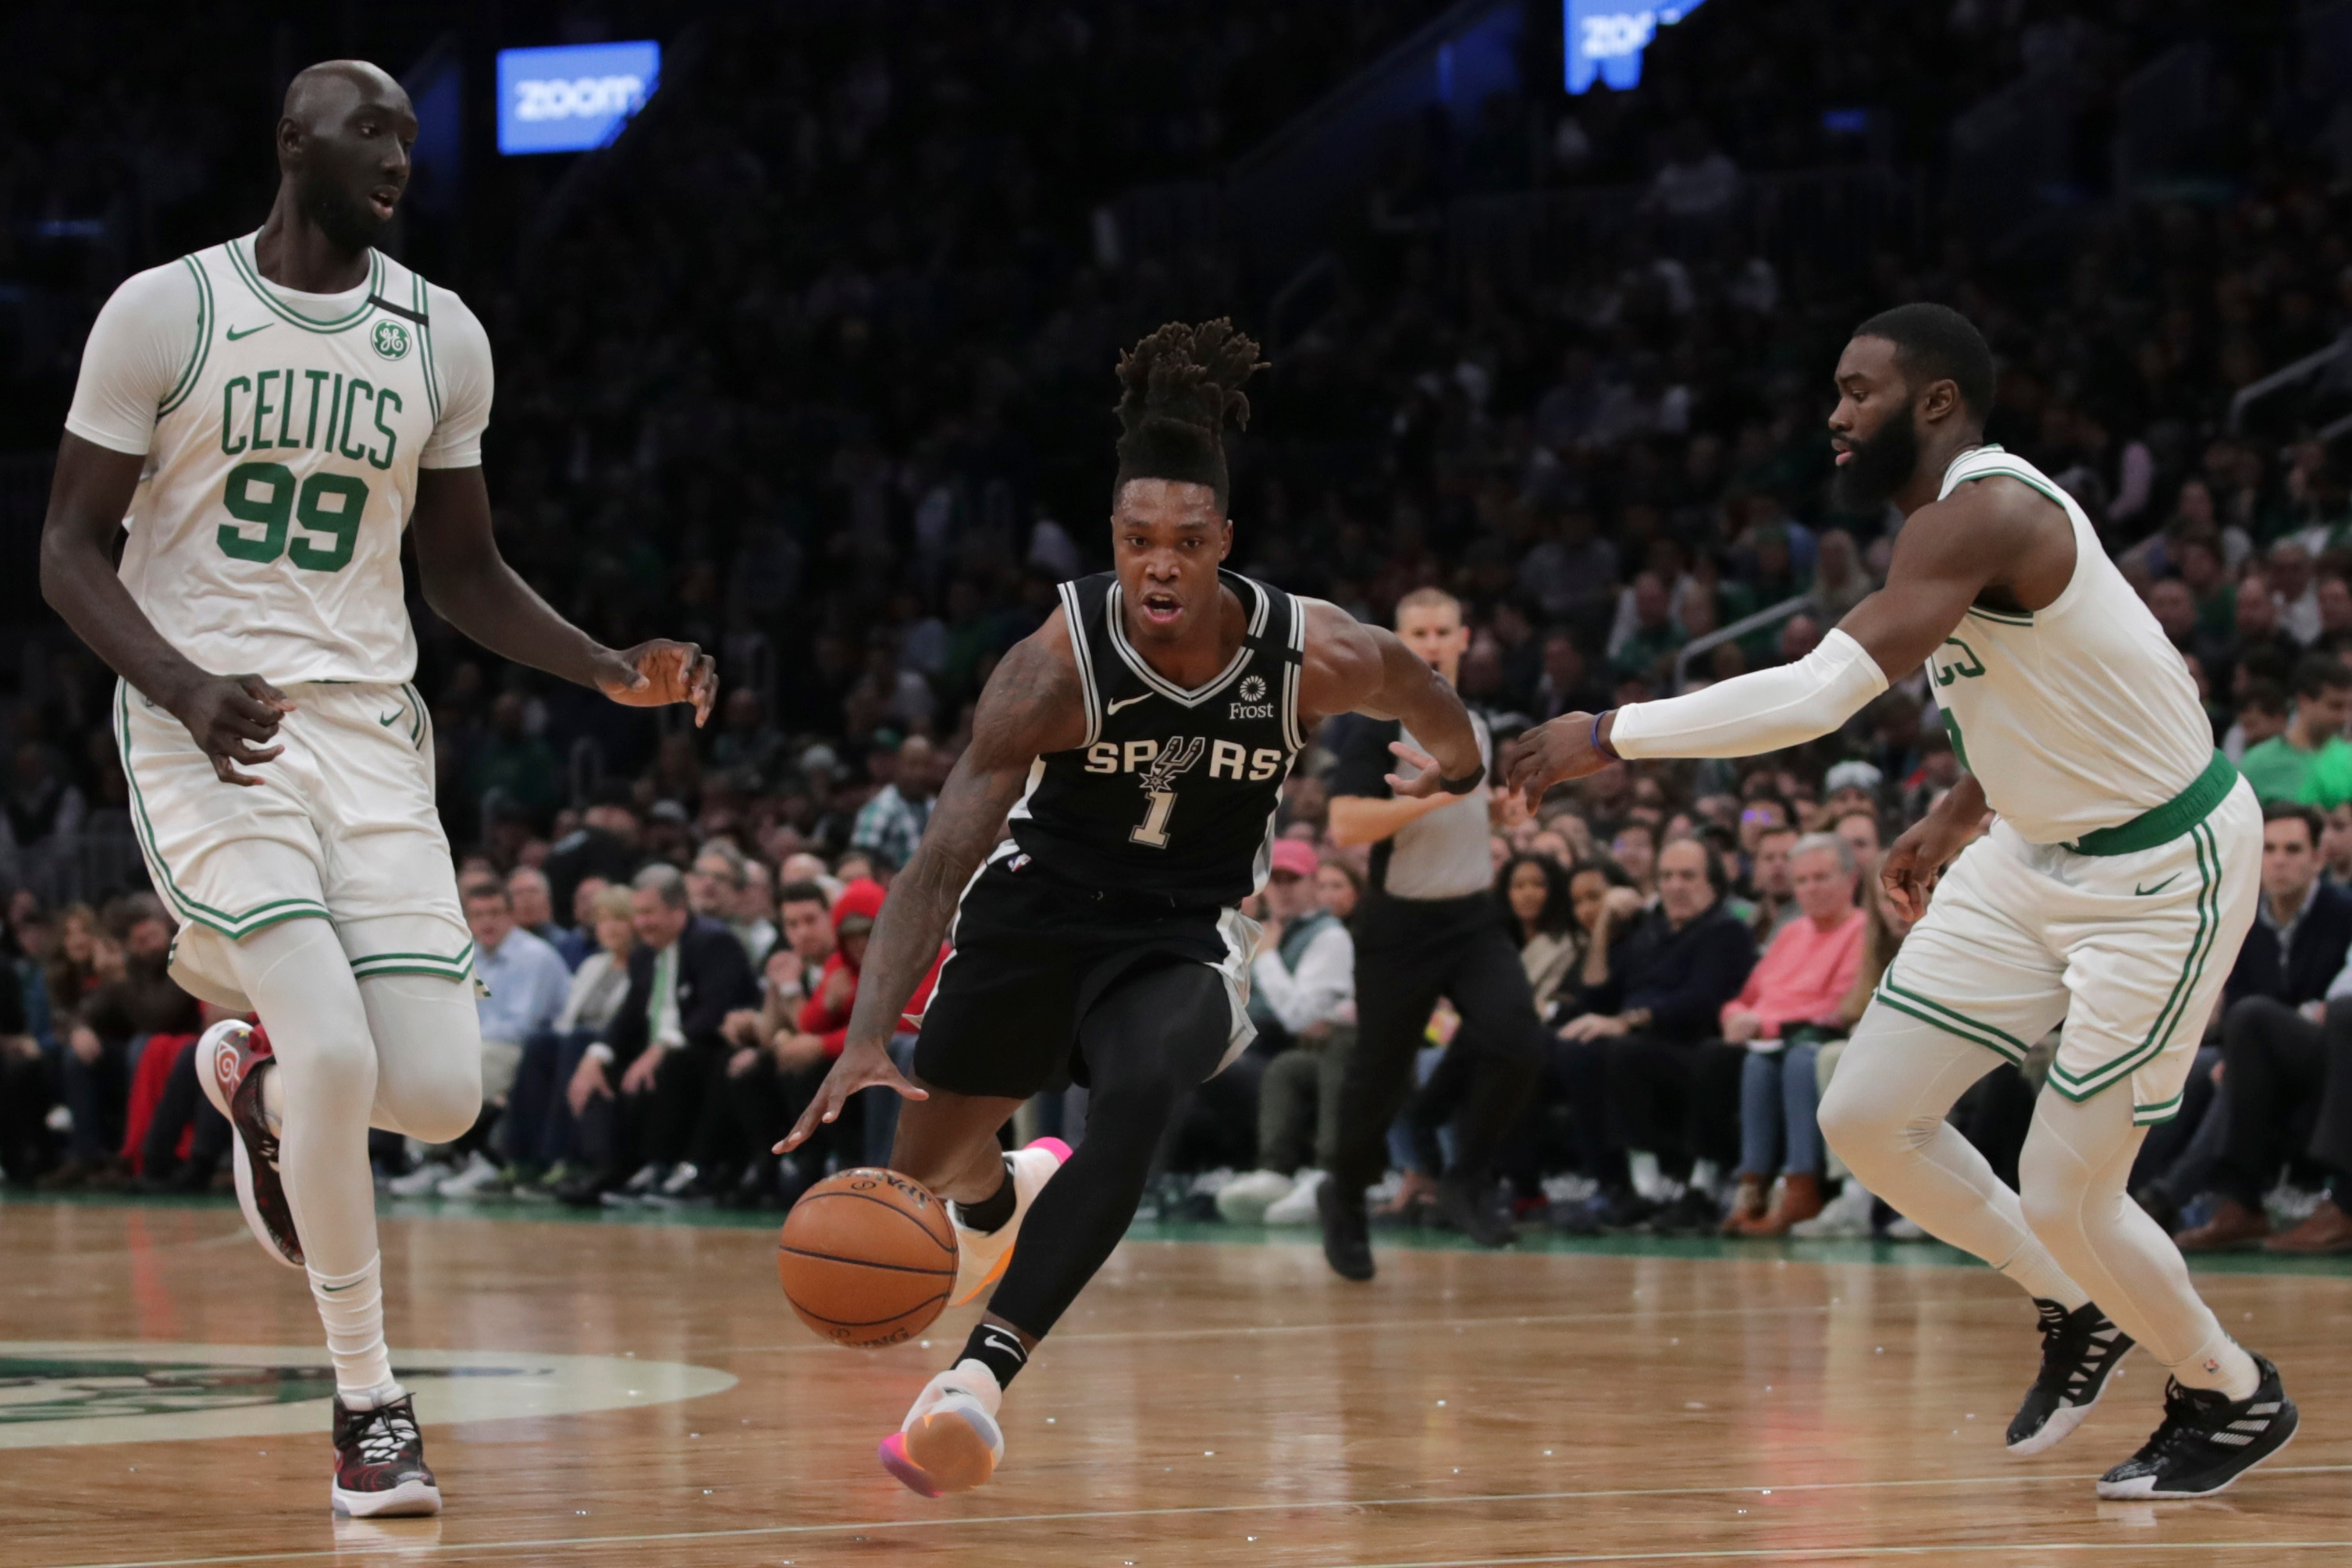 Tacko Fall And Jaylen Brown Show Off Their Quarantine Hobbies And Dish On Teammates On Instagram The Boston Globe Dave rubin interviews the youtuber bunty king. tacko fall and jaylen brown show off